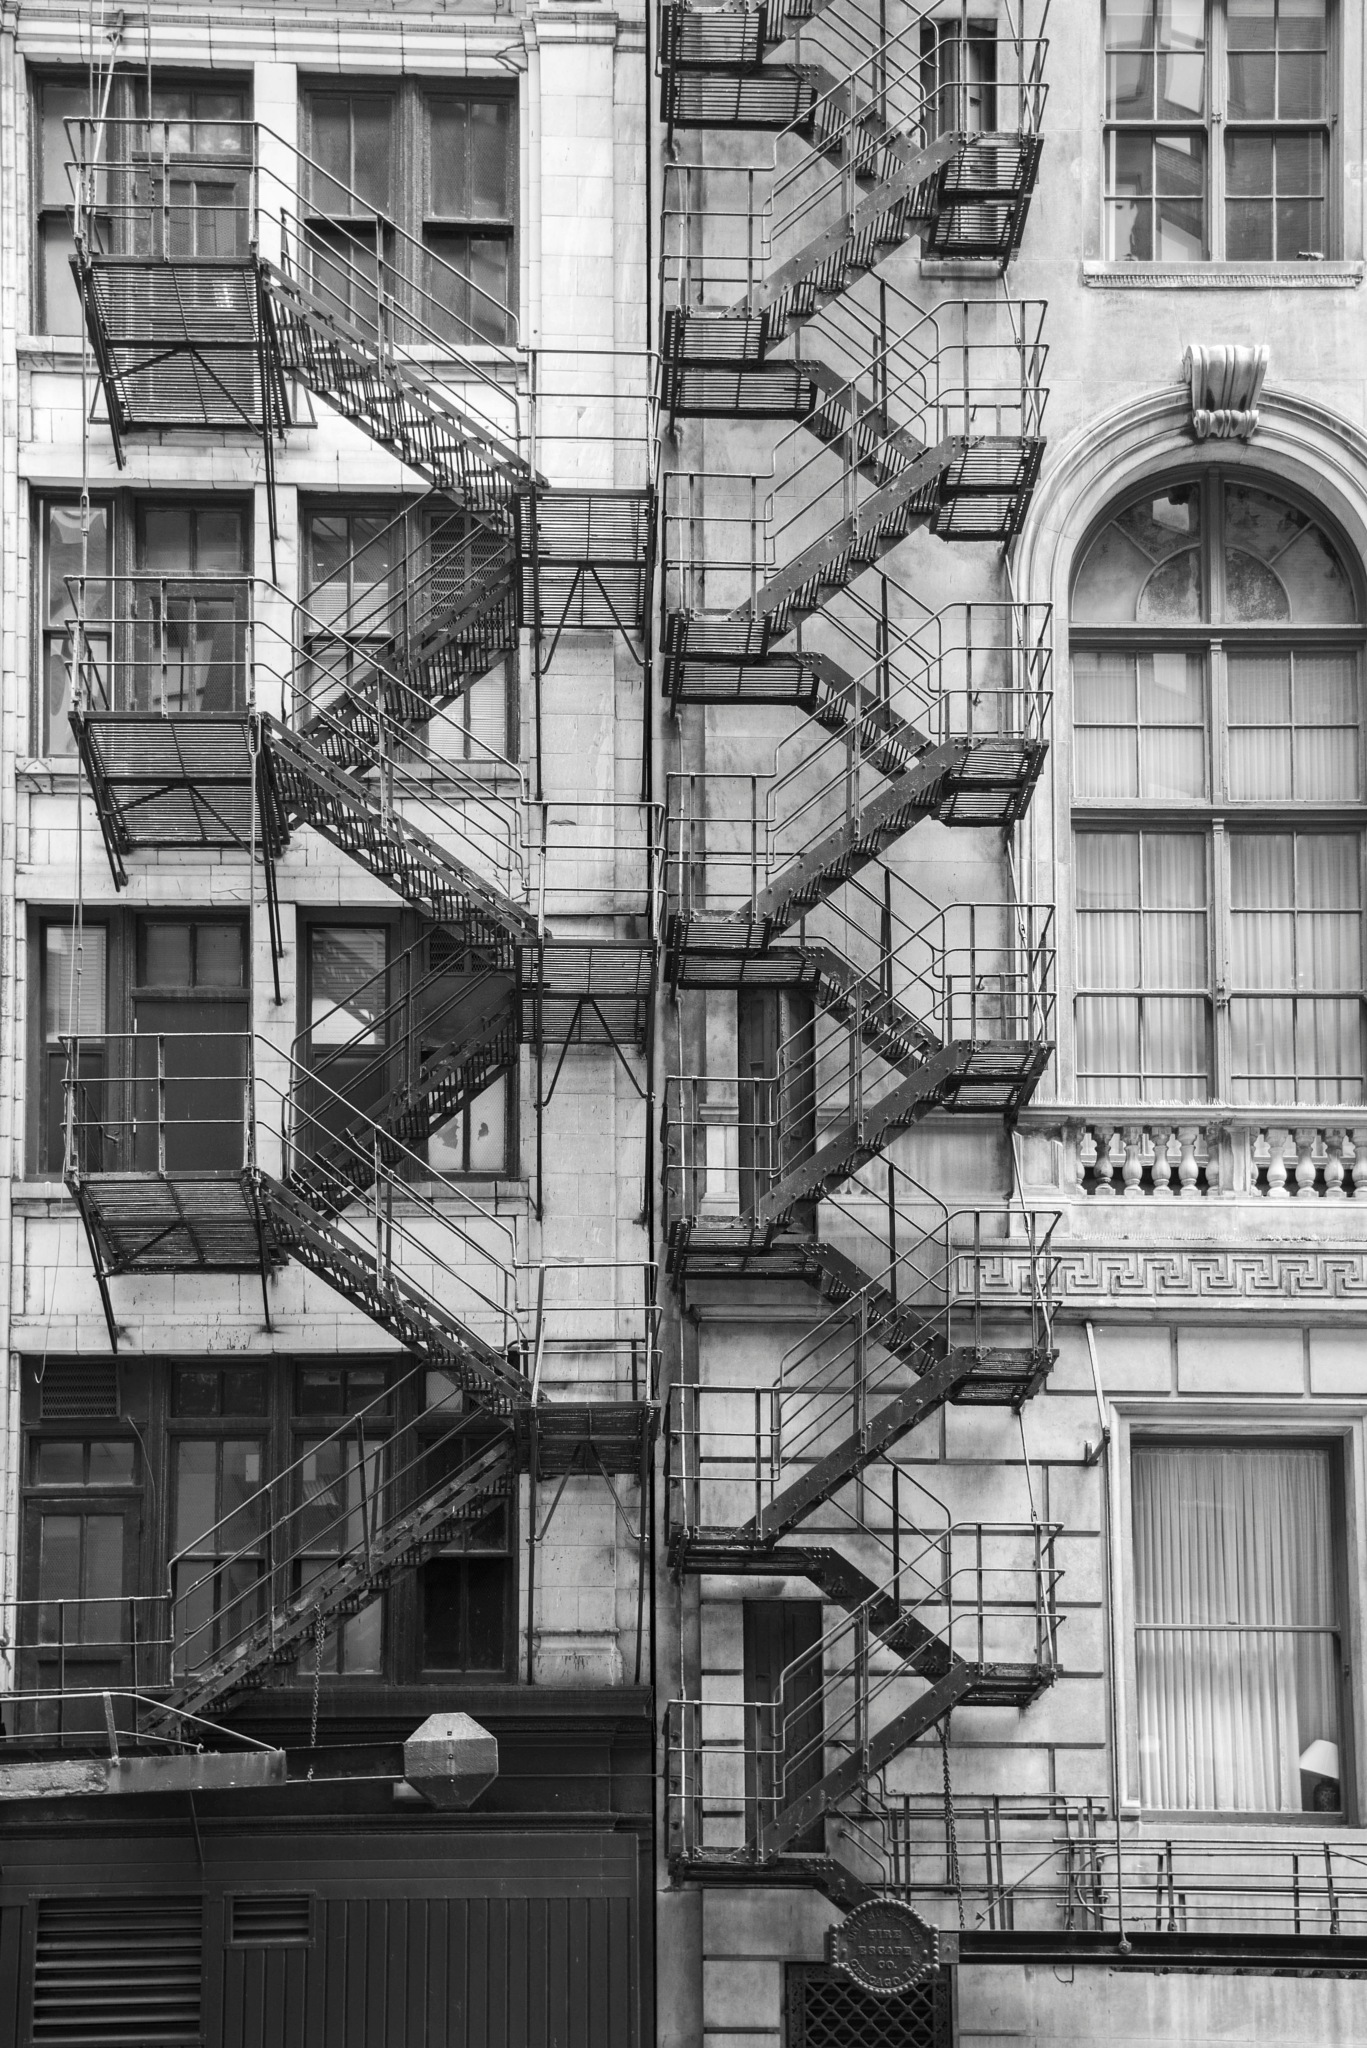 stairs in Chicago by alextrusty